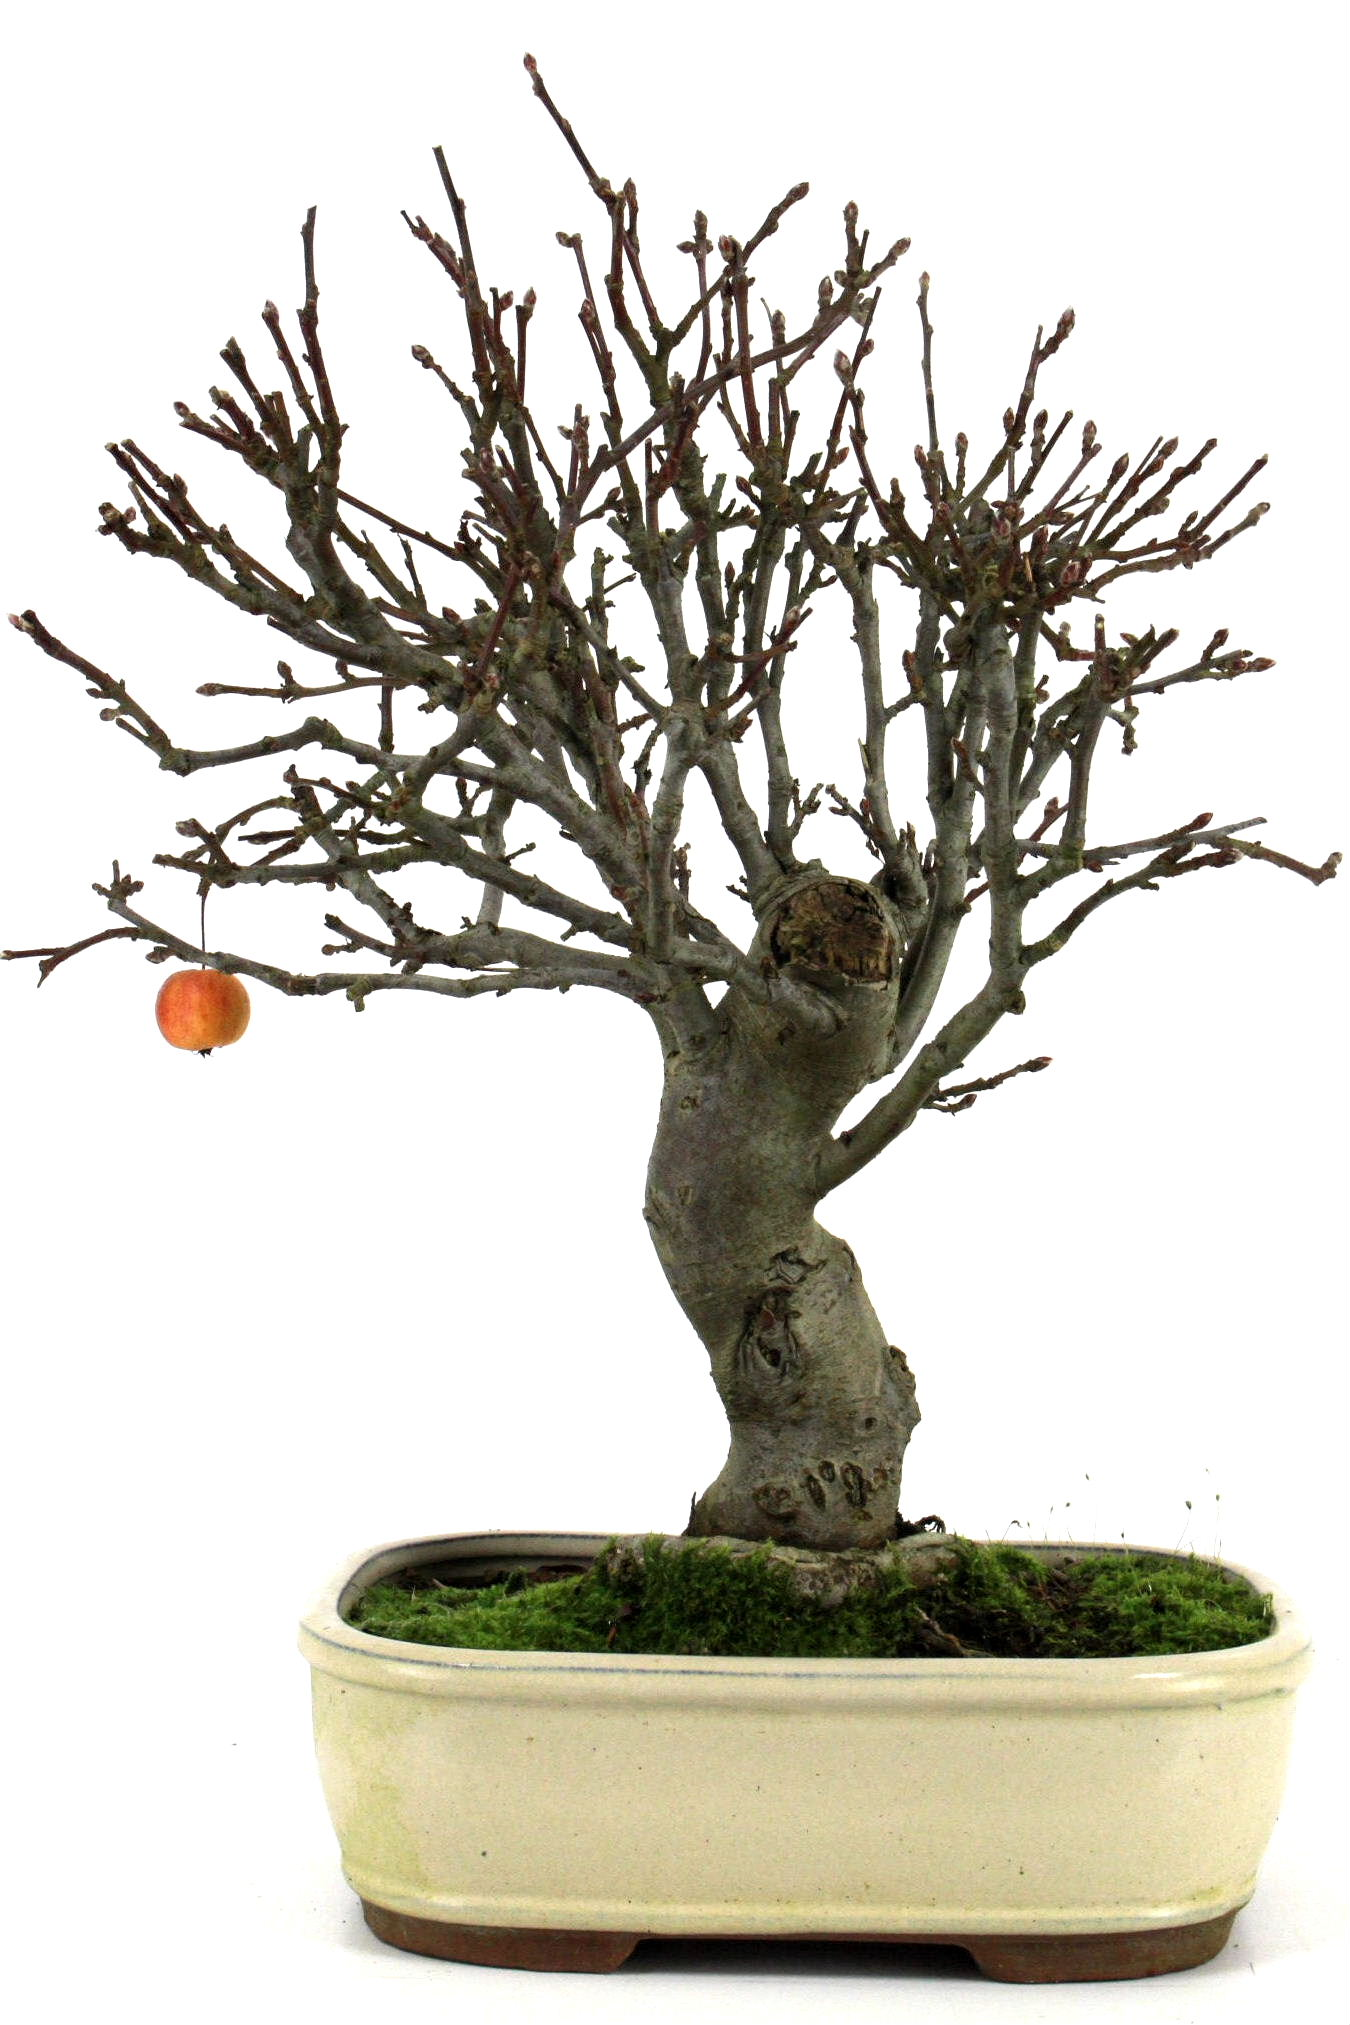 bonsai apfel malus halliana 50 55 cm 261 bei oyaki bonsai. Black Bedroom Furniture Sets. Home Design Ideas